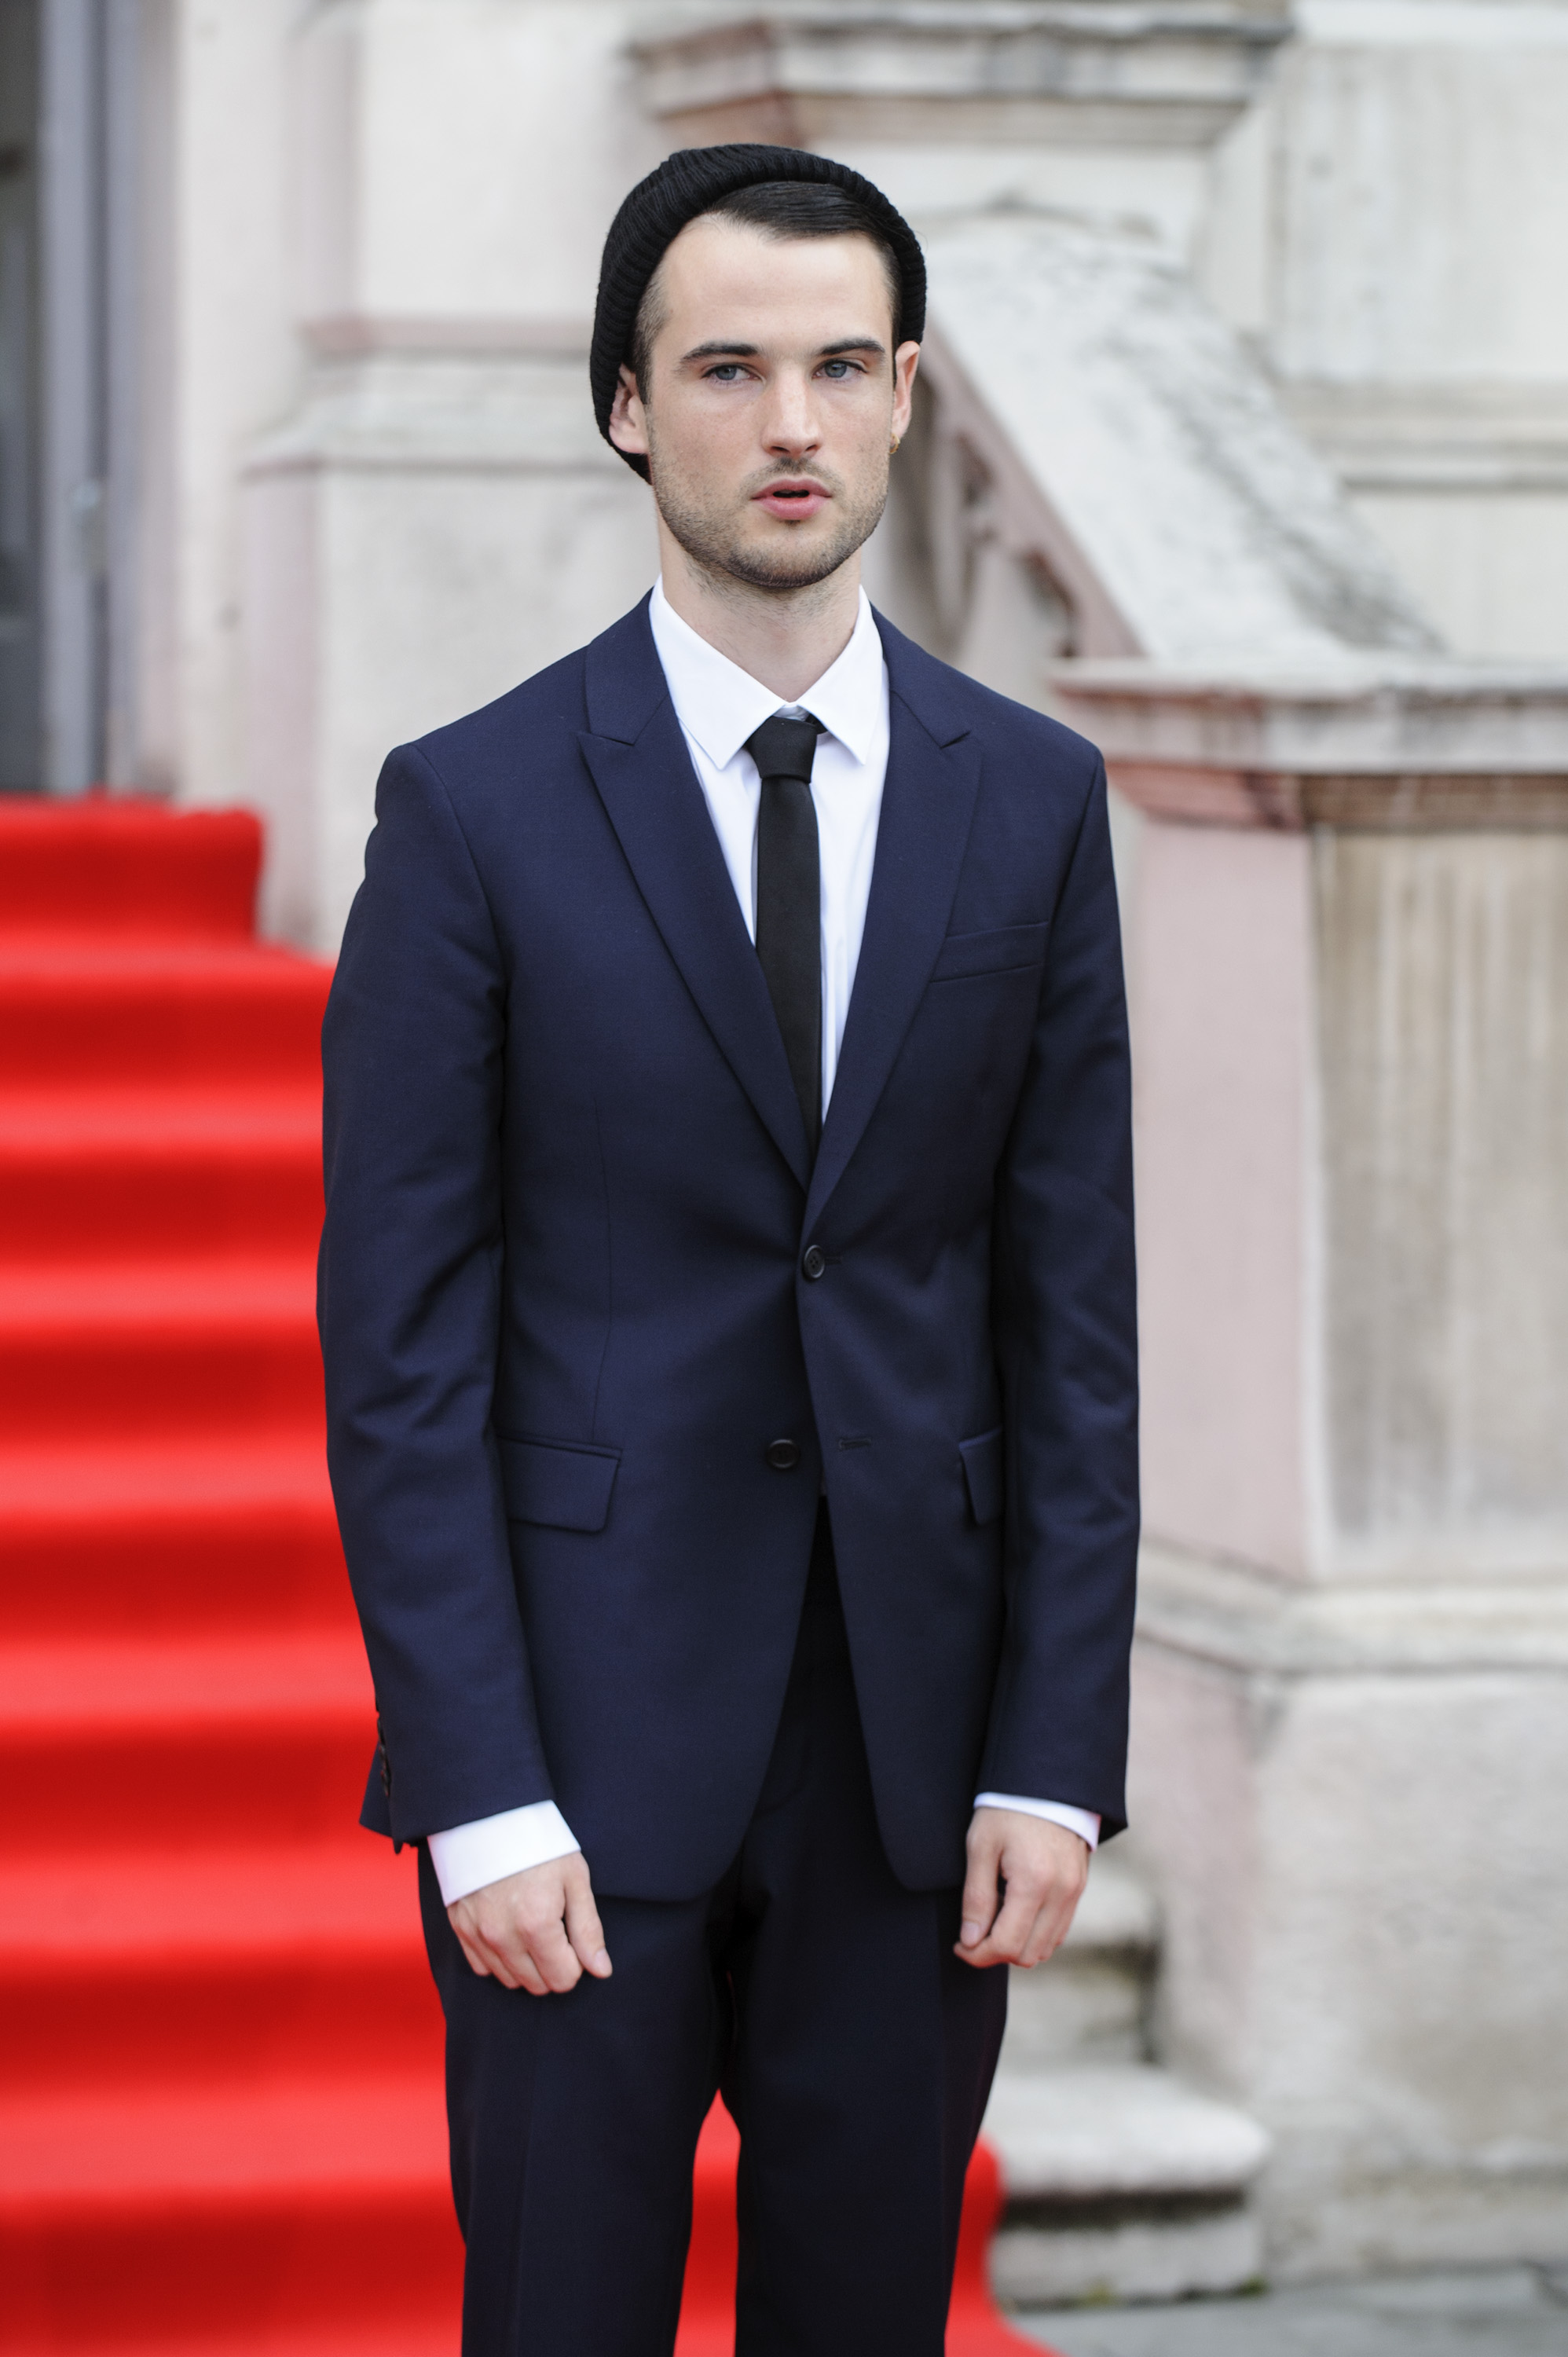 Tom Sturrdige attend the UK premiere of his new film On The Road.